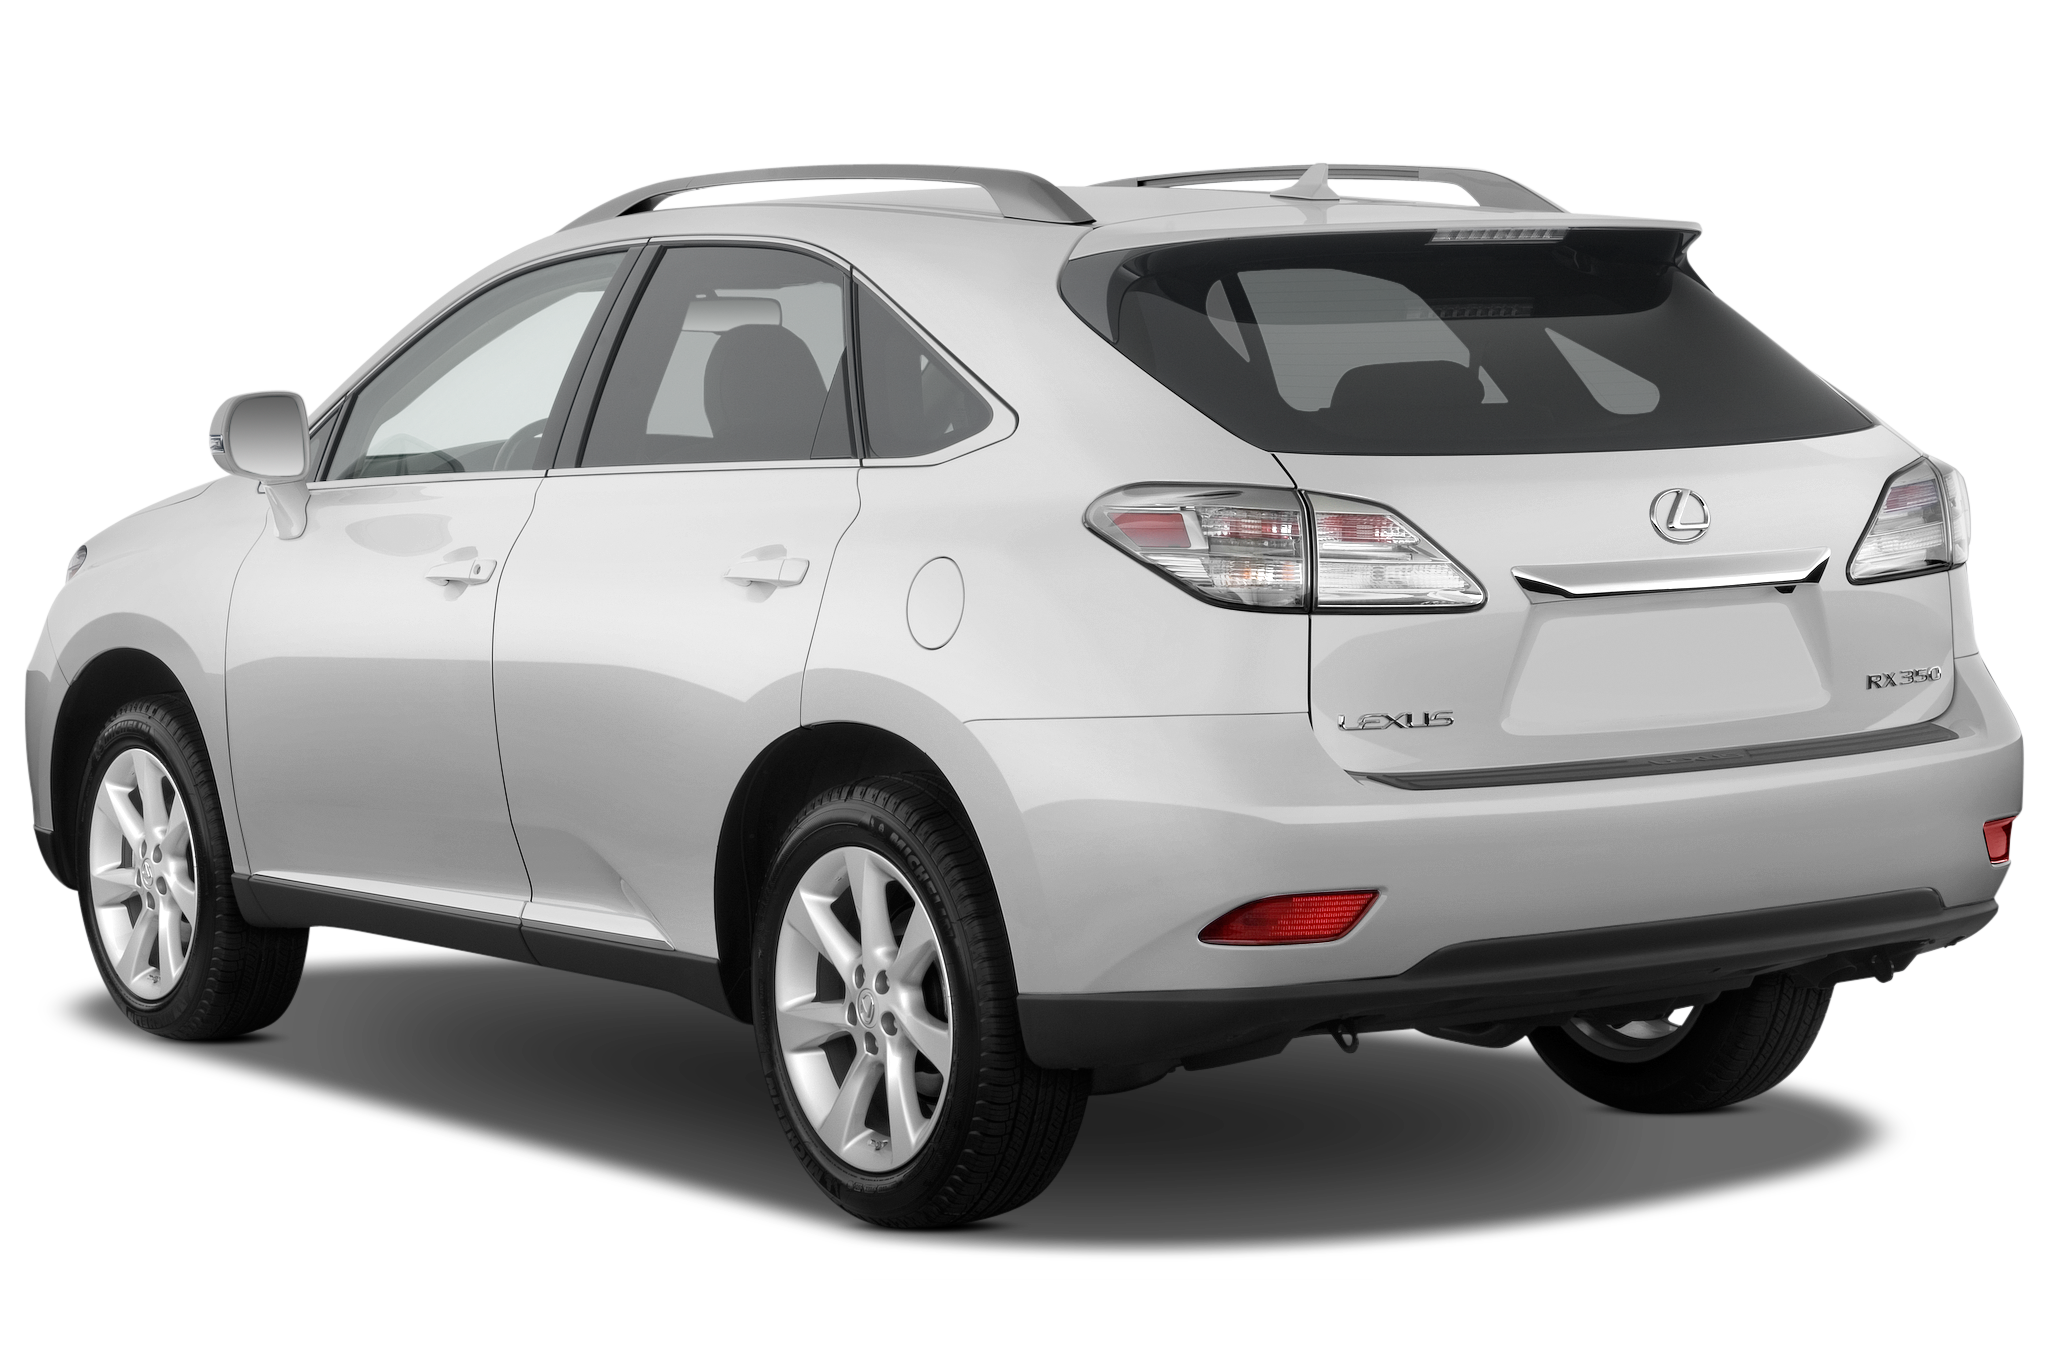 2010 Lexus Rx350 Lexus Luxury Crossover Suv Review